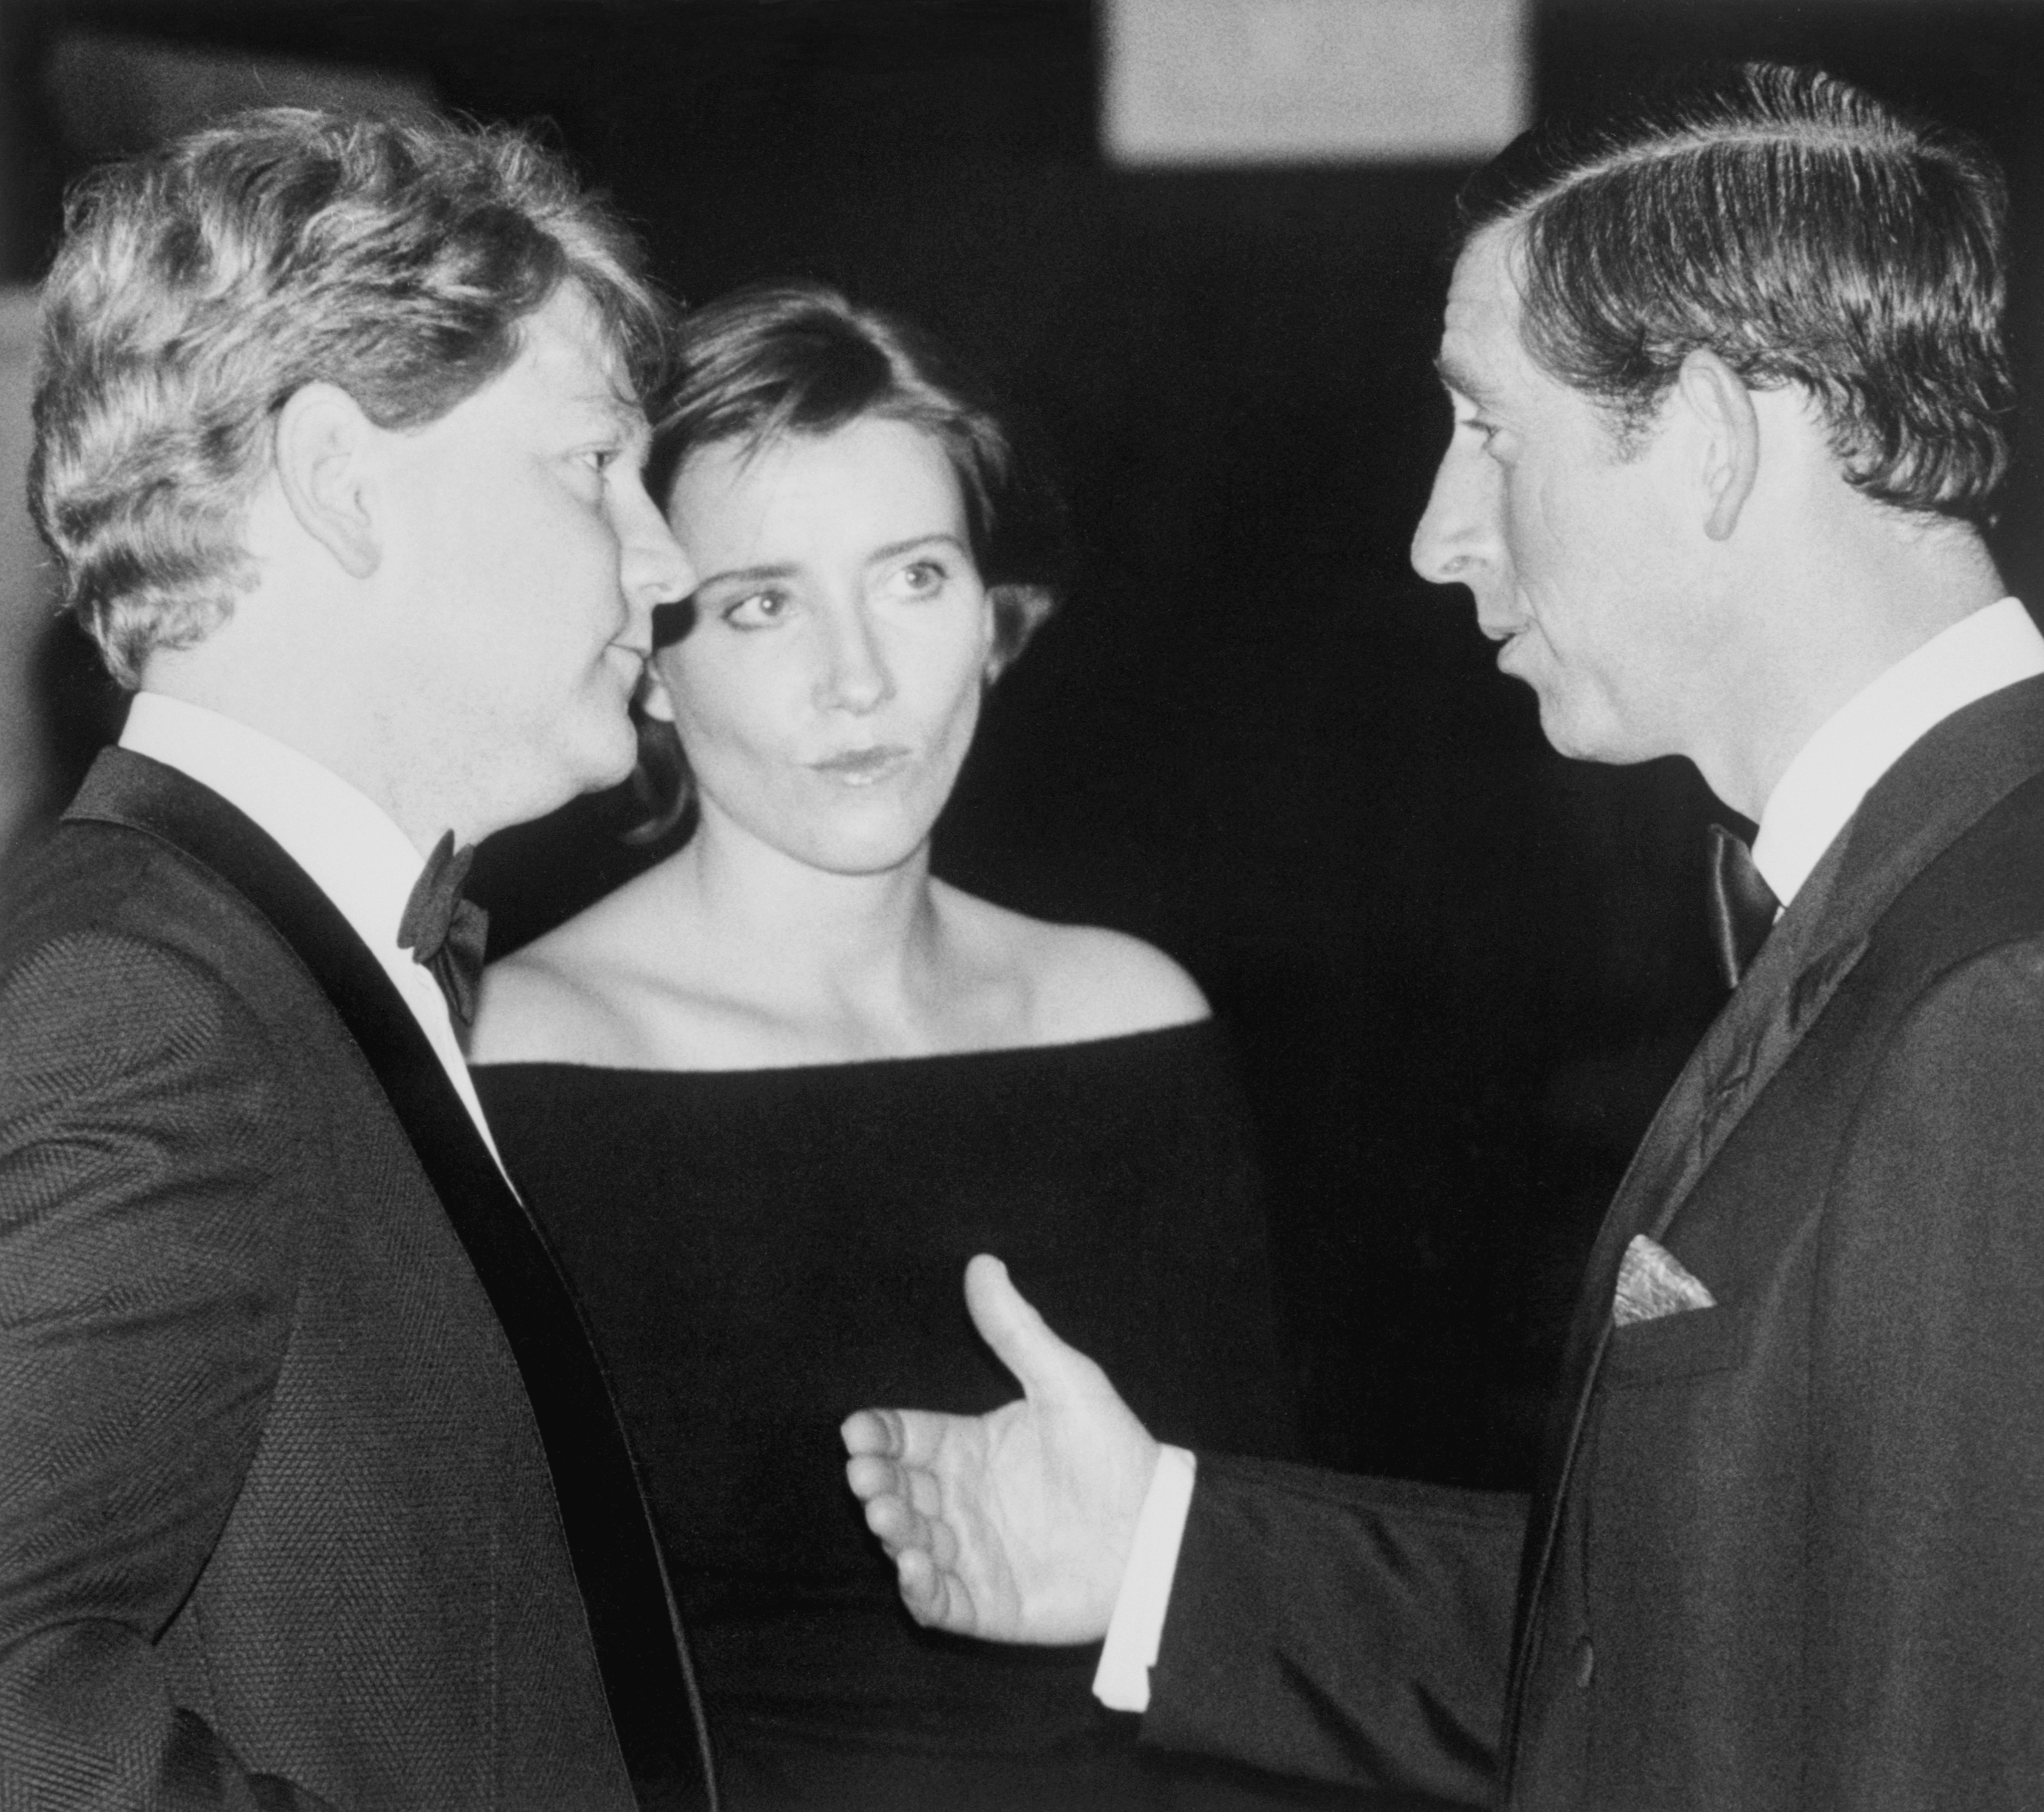 Prince Charles (r) talks with actor-director Kenneth Branagh and his actress wife Emma Thompson at the Royal World Charity premiere of Branagh's film version of Henry V at the Odeon Leicester Square, London. Branagh starred in the title role and his wife played Princess Katherine.   (Photo by PA Images via Getty Images)